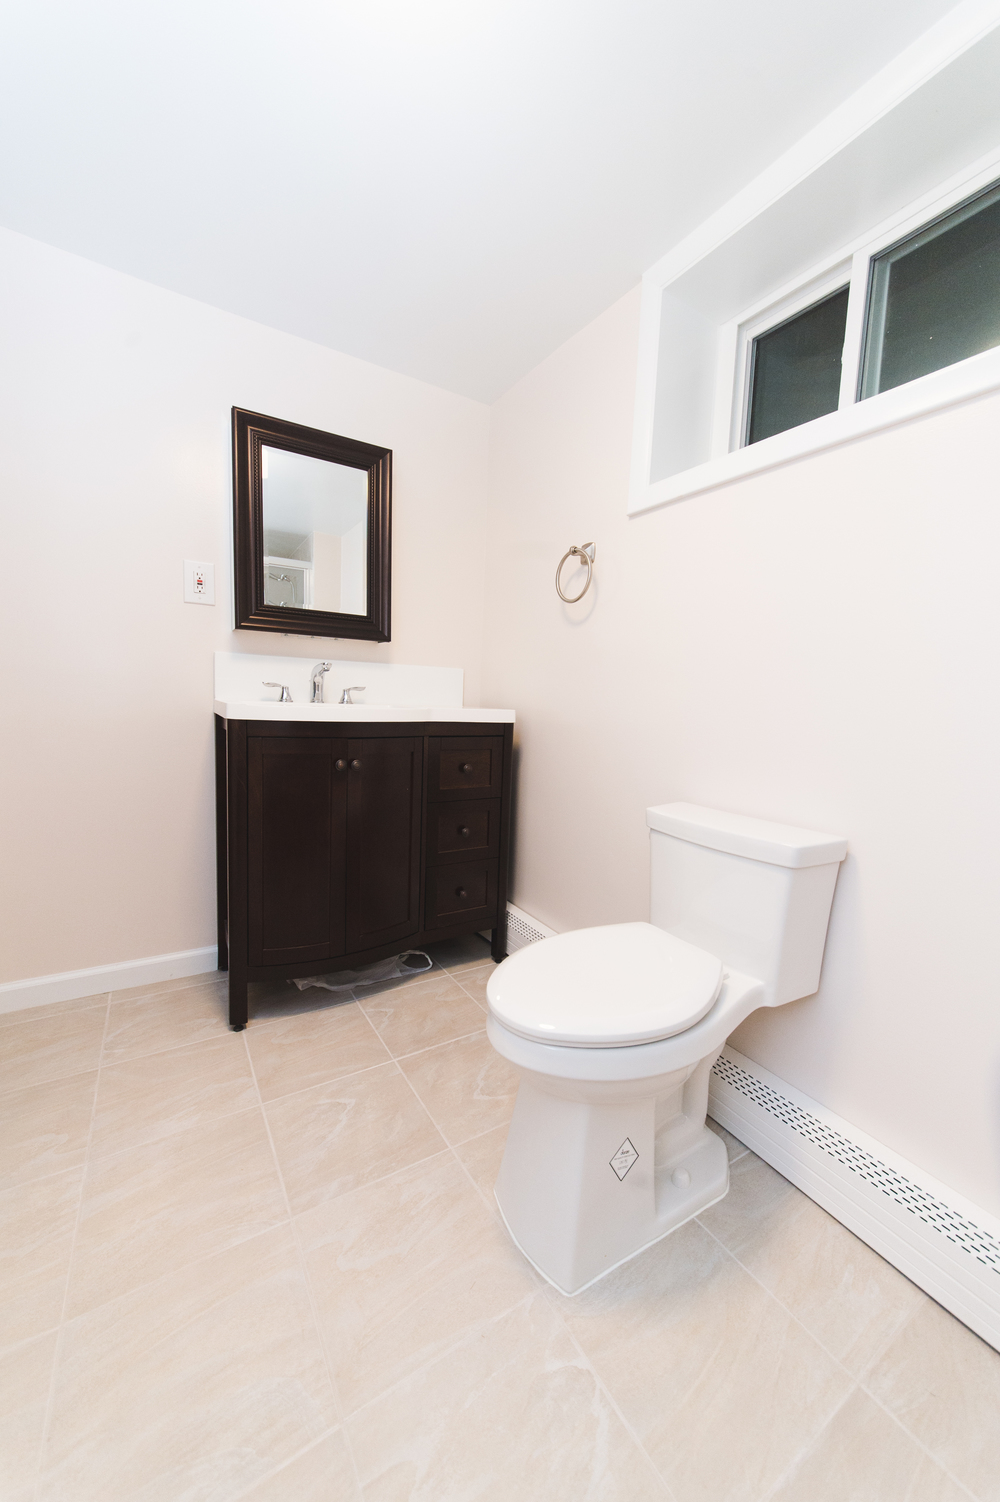 Zhiru Bathroom Remodeling Ellicott City MD-19.jpg